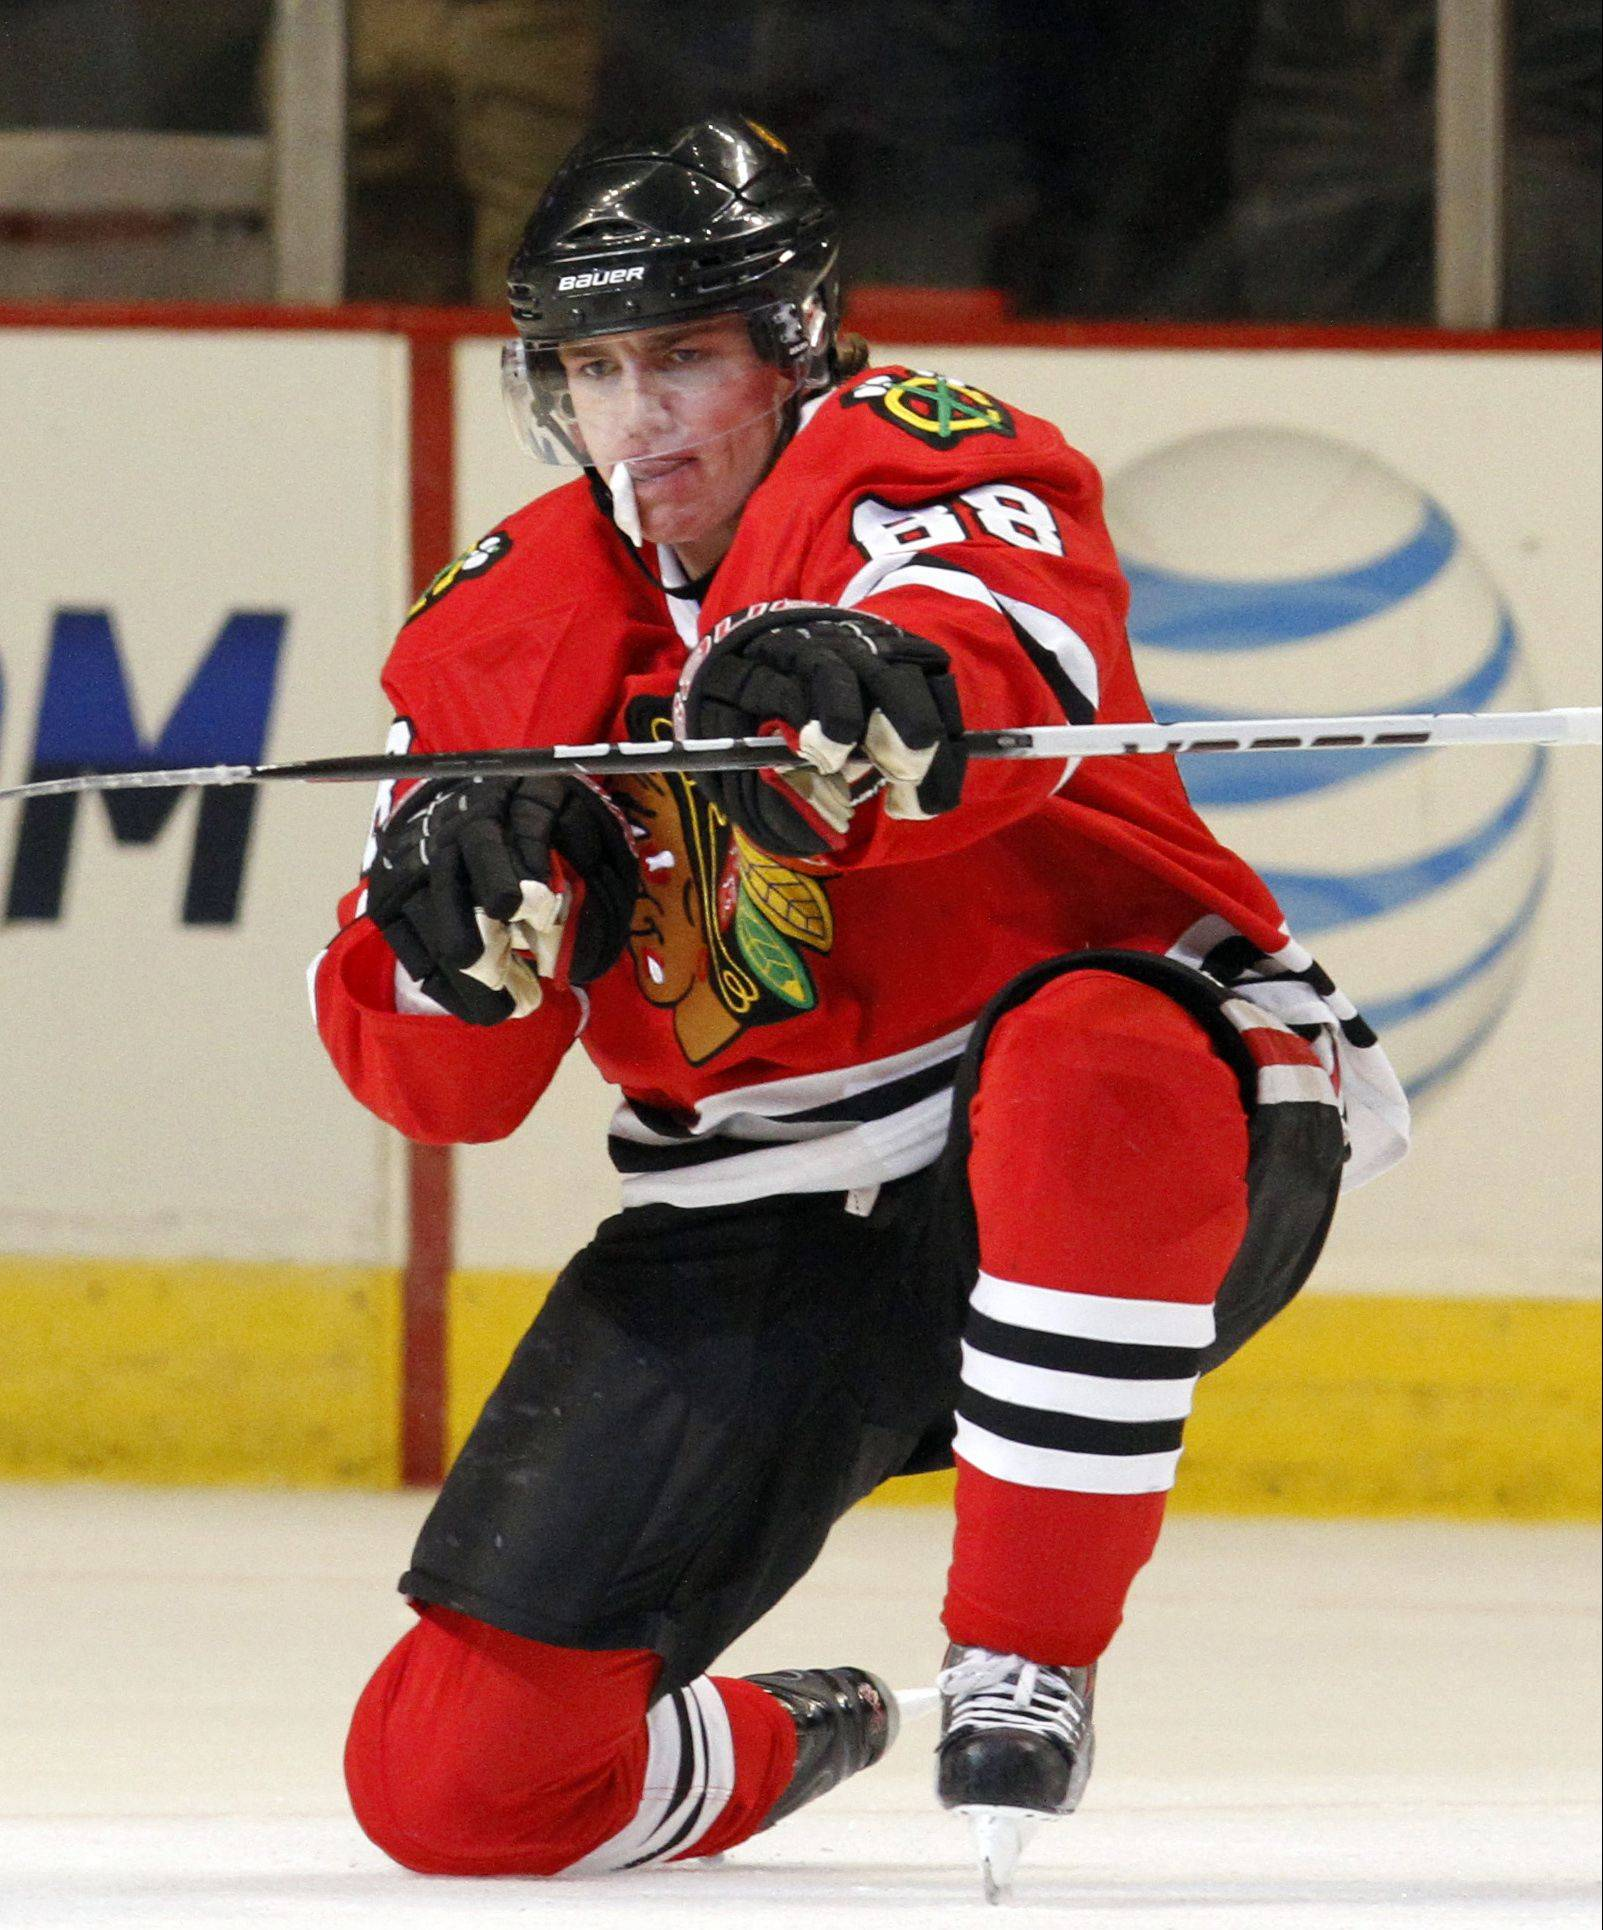 Although he's a nearly point-a-game scores for the Blackhawks, winger Patrick Kane says he wants to focus on being more consistant and improving all facets of his game.